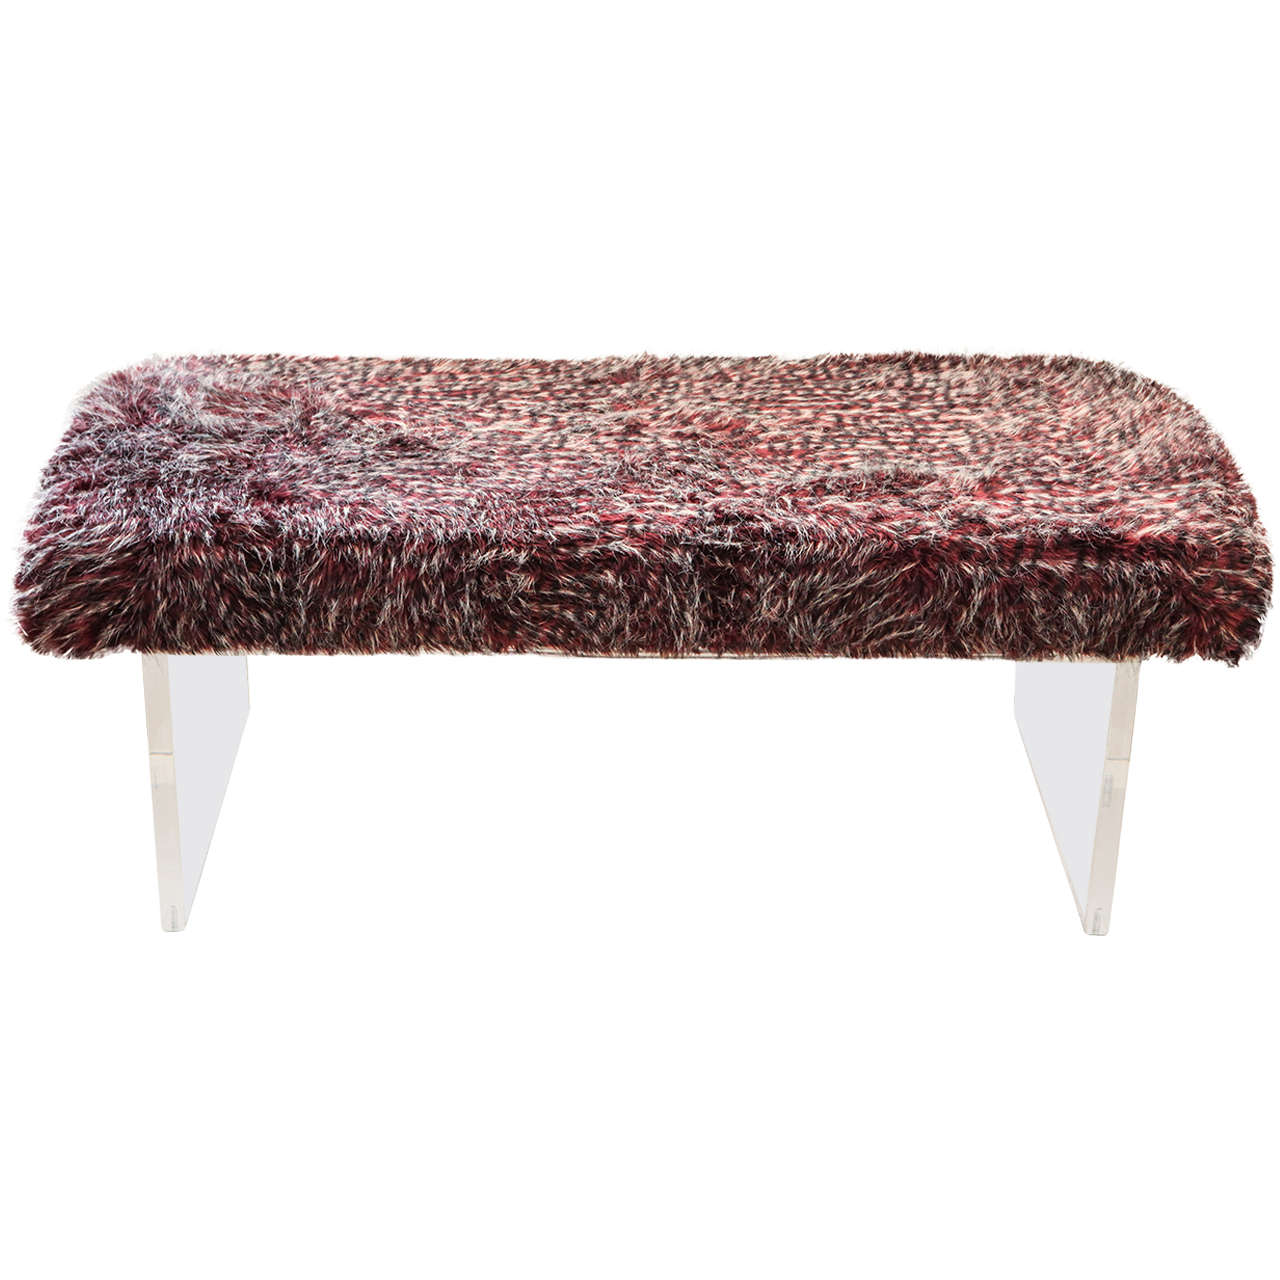 Anfibio Bed By Alessandro Becchi For Giovannetti 1960's Faux Fur Bench For Sale at 1stdibs